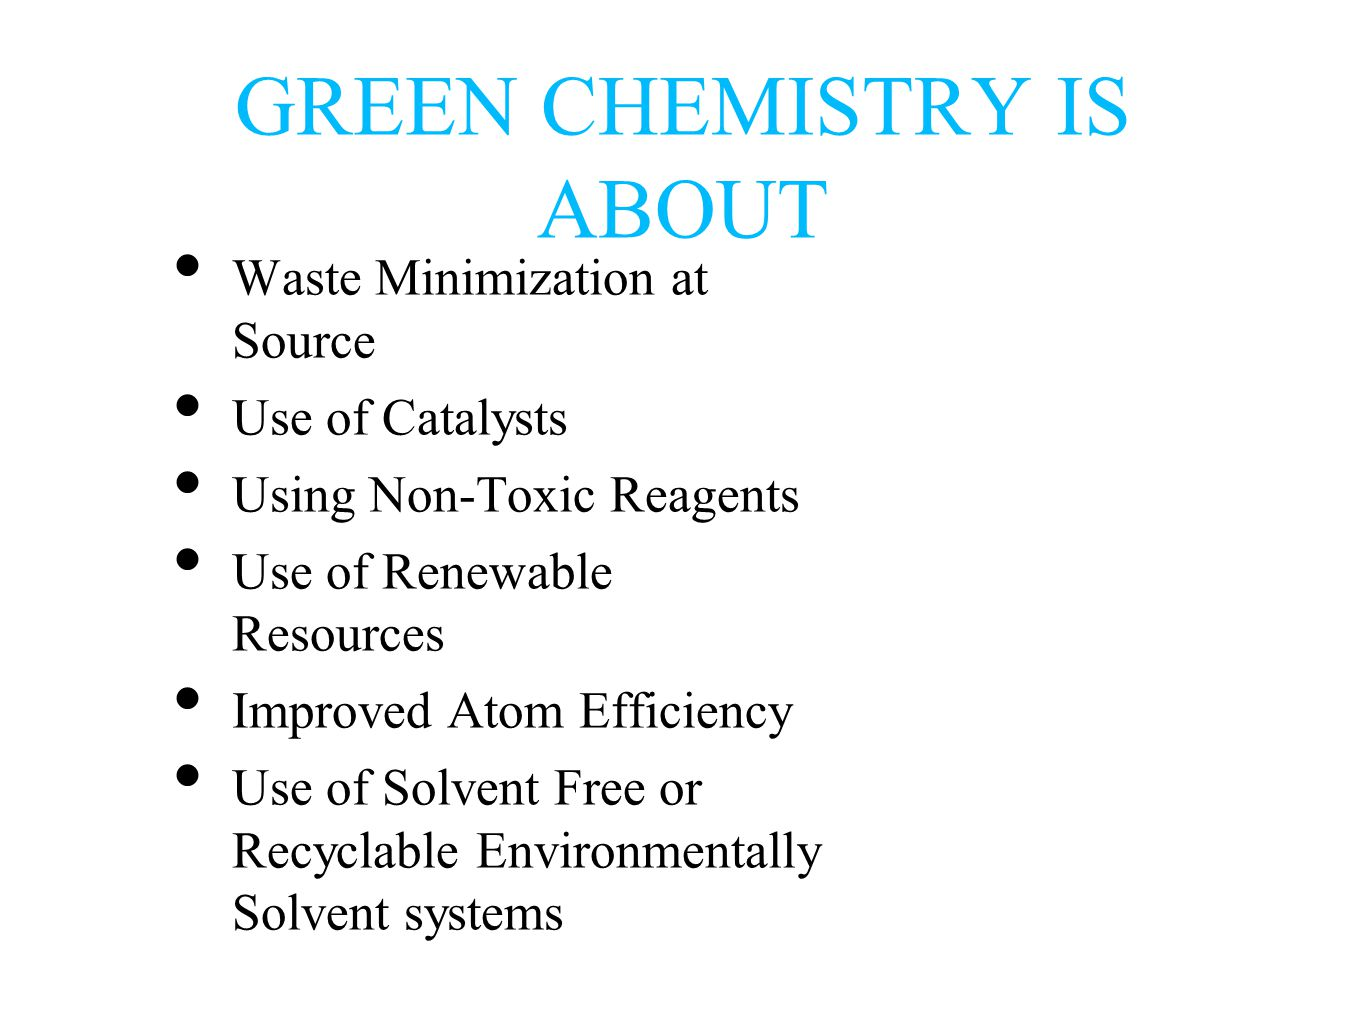 GREEN CHEMISTRY IS ABOUT